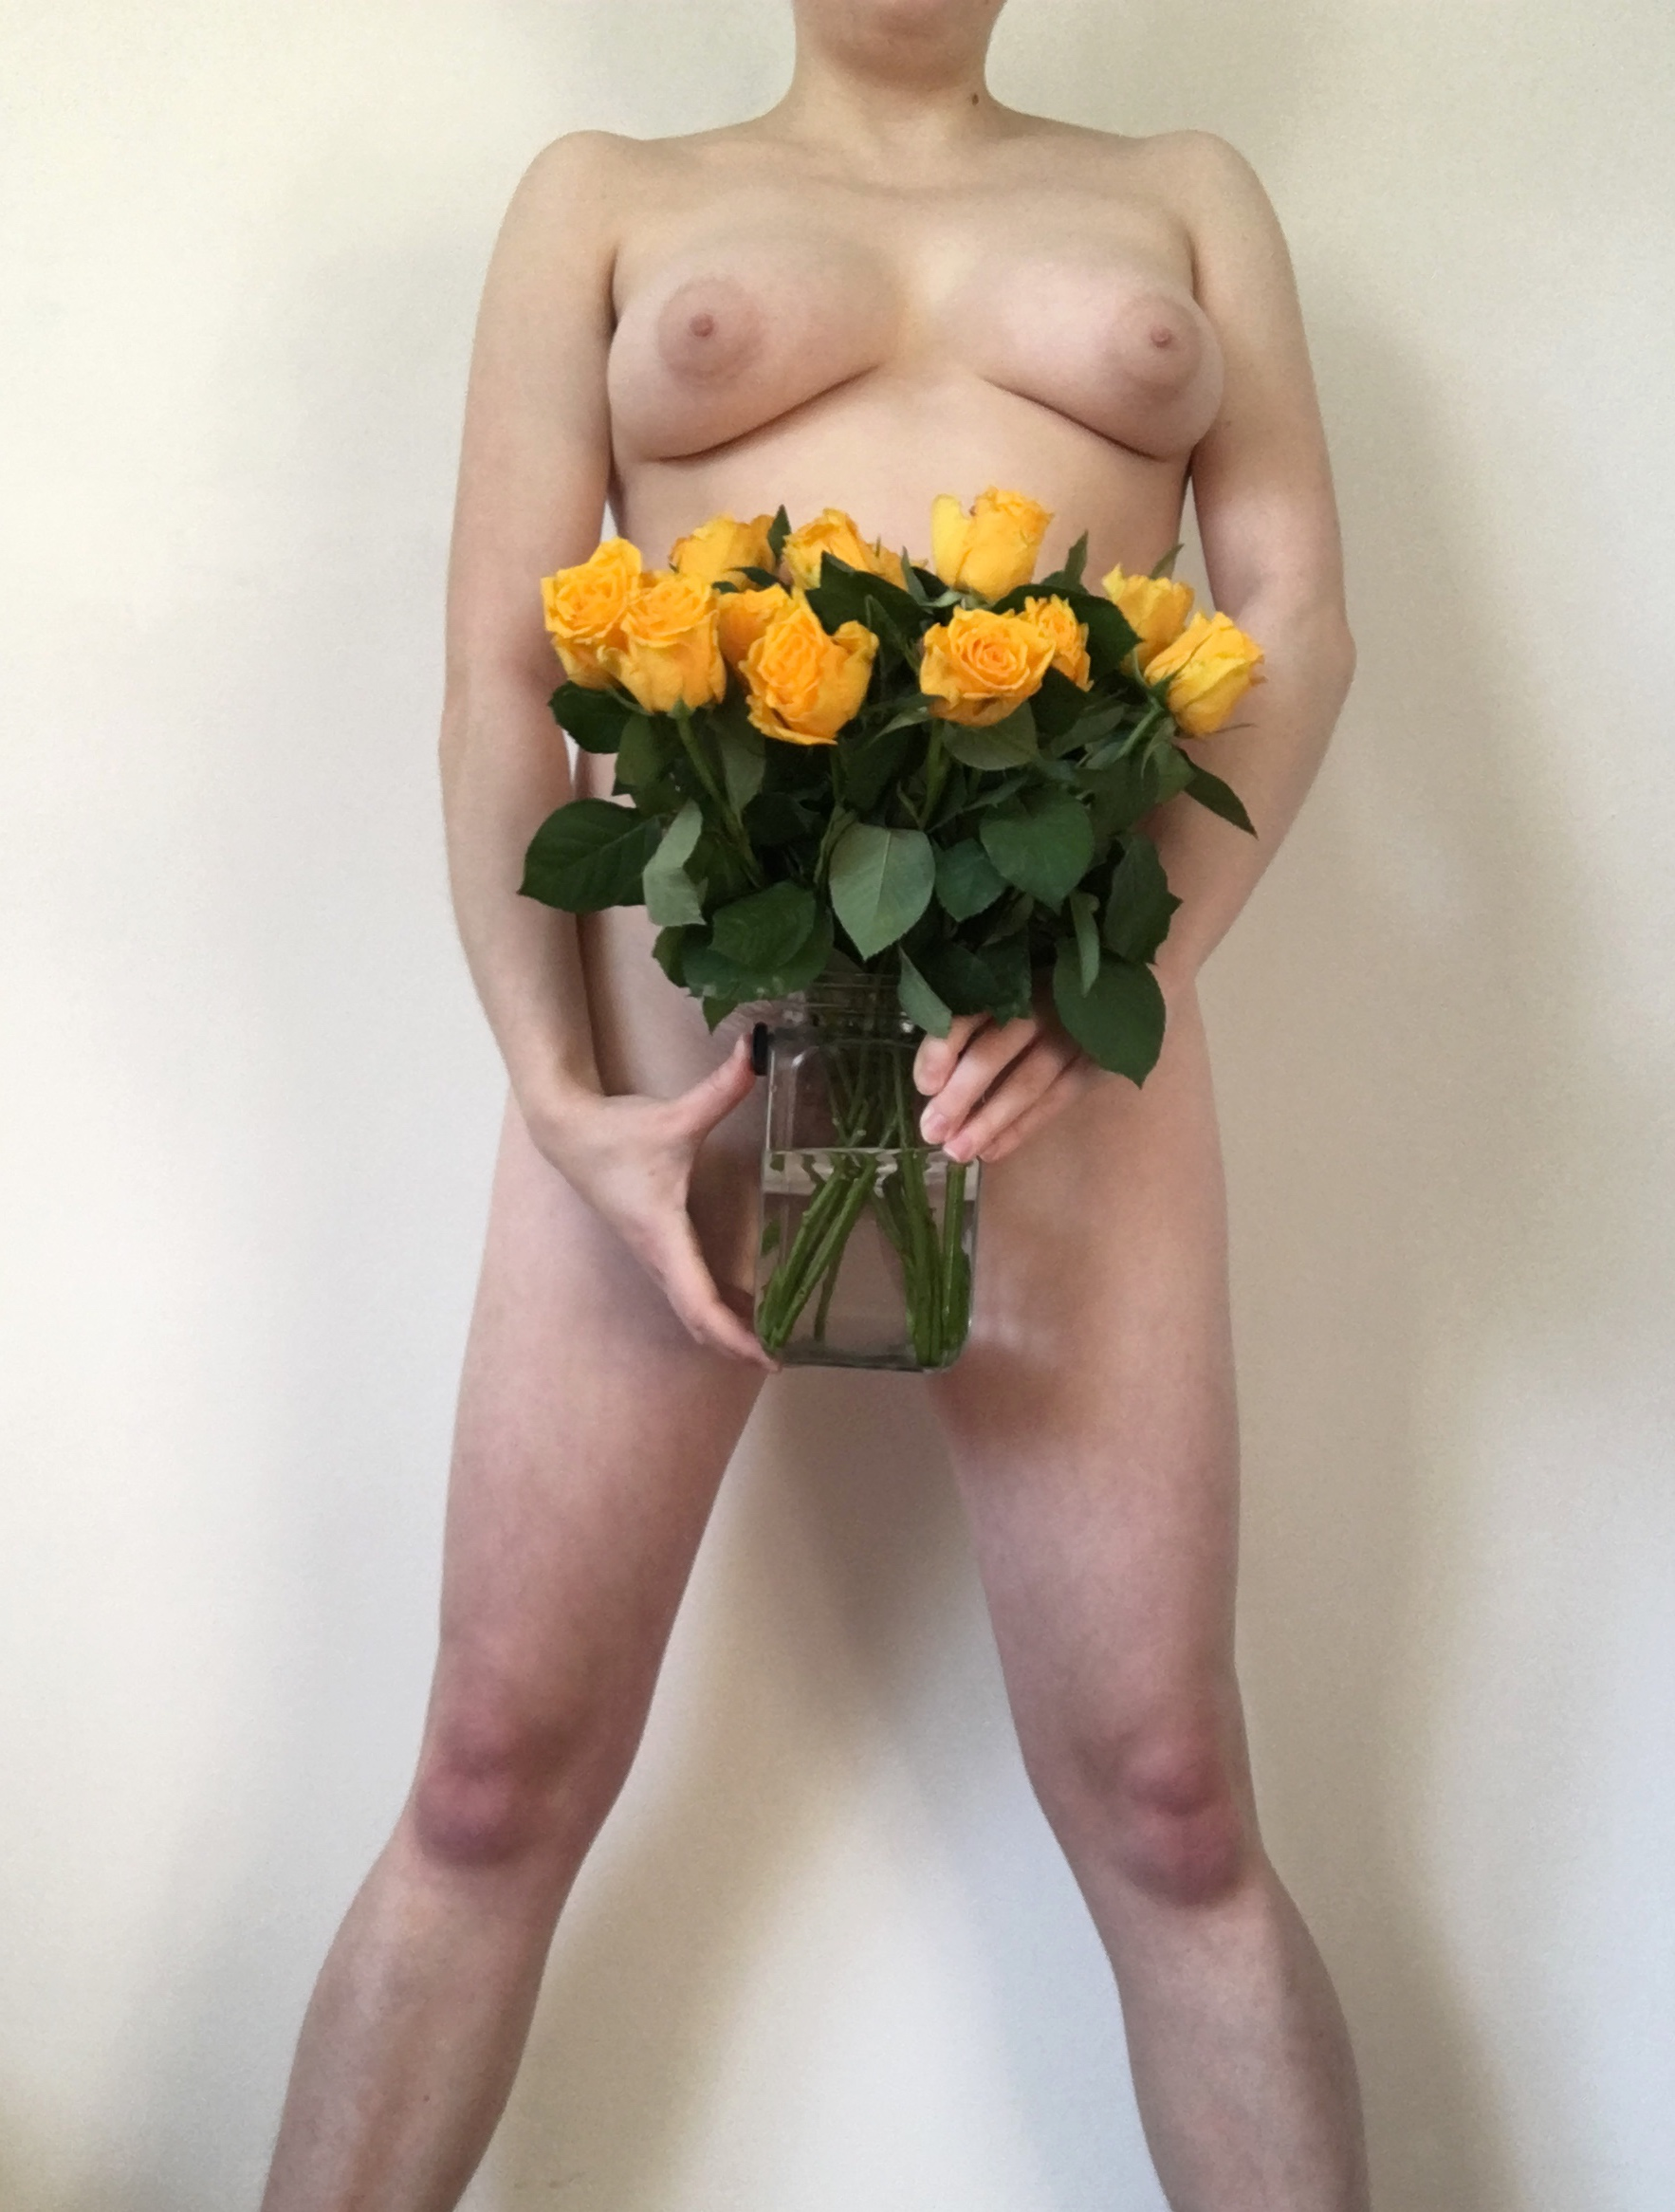 A naked trans guy holds a vase of yellow roses in front of his crotch. Photo.